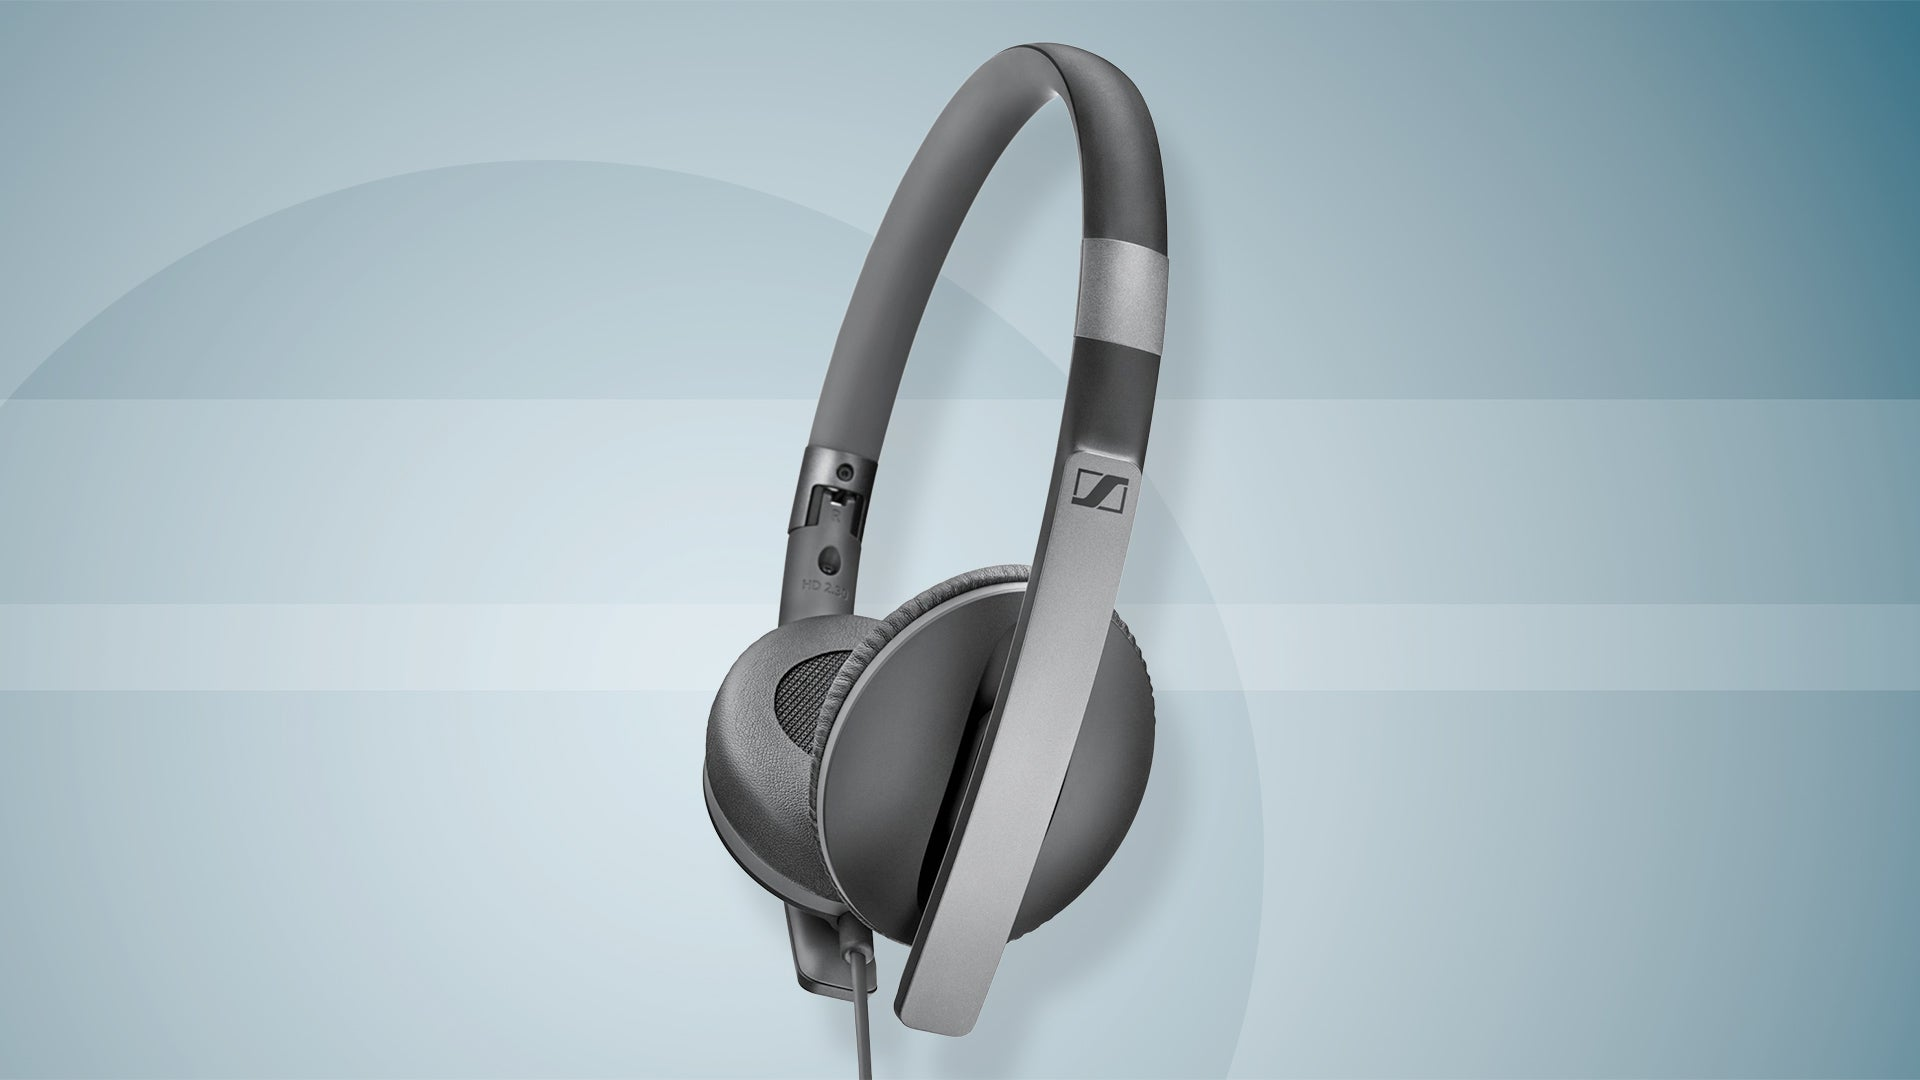 Sennheiser Hd 2 30 Review Trusted Reviews